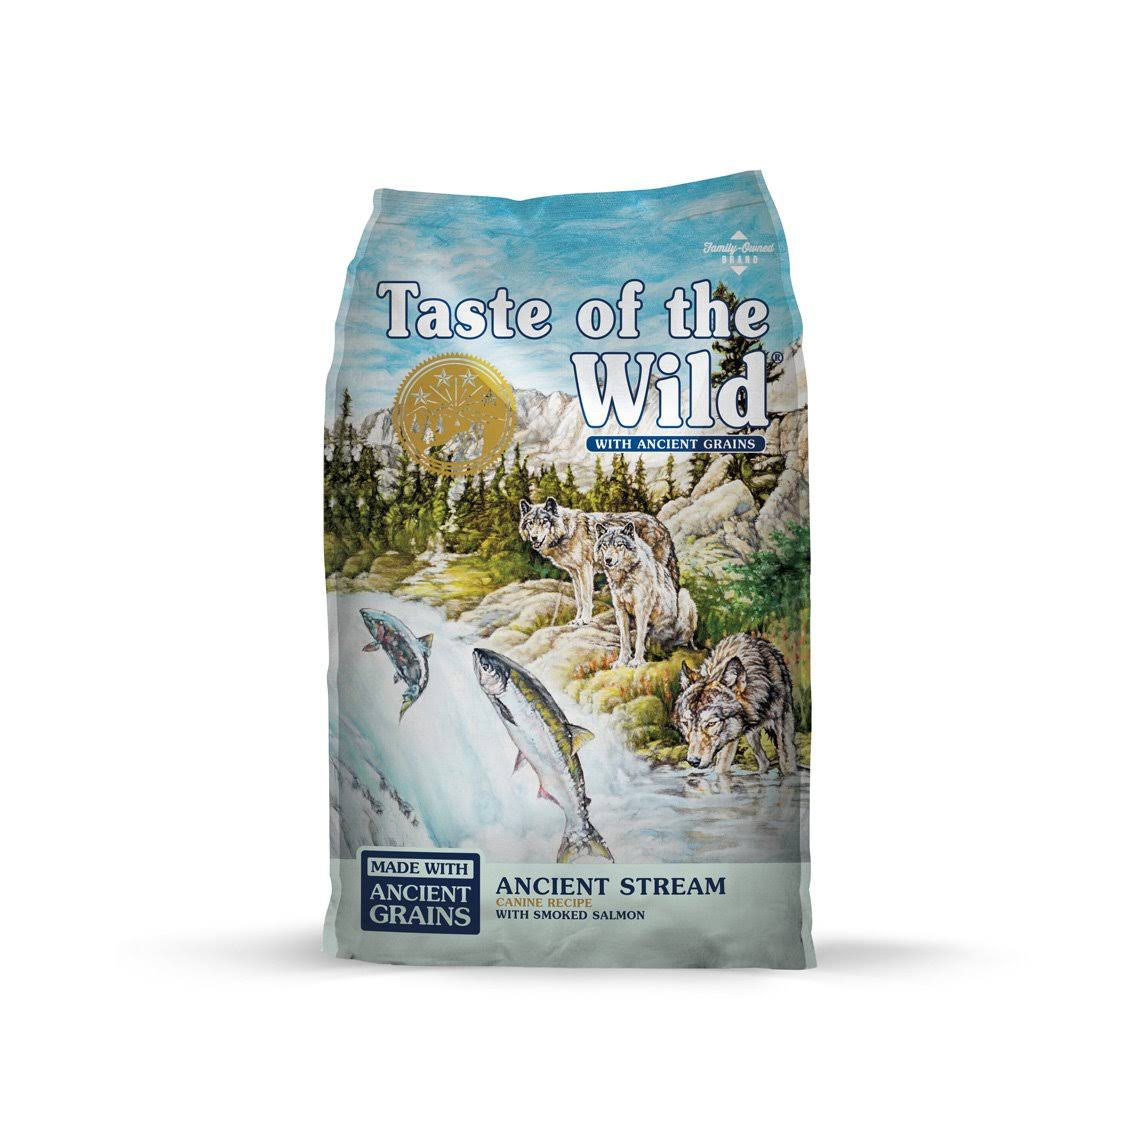 Taste of The Wild Ancient Stream with Ancient Grains Dry Dog Food - 5 lbs.